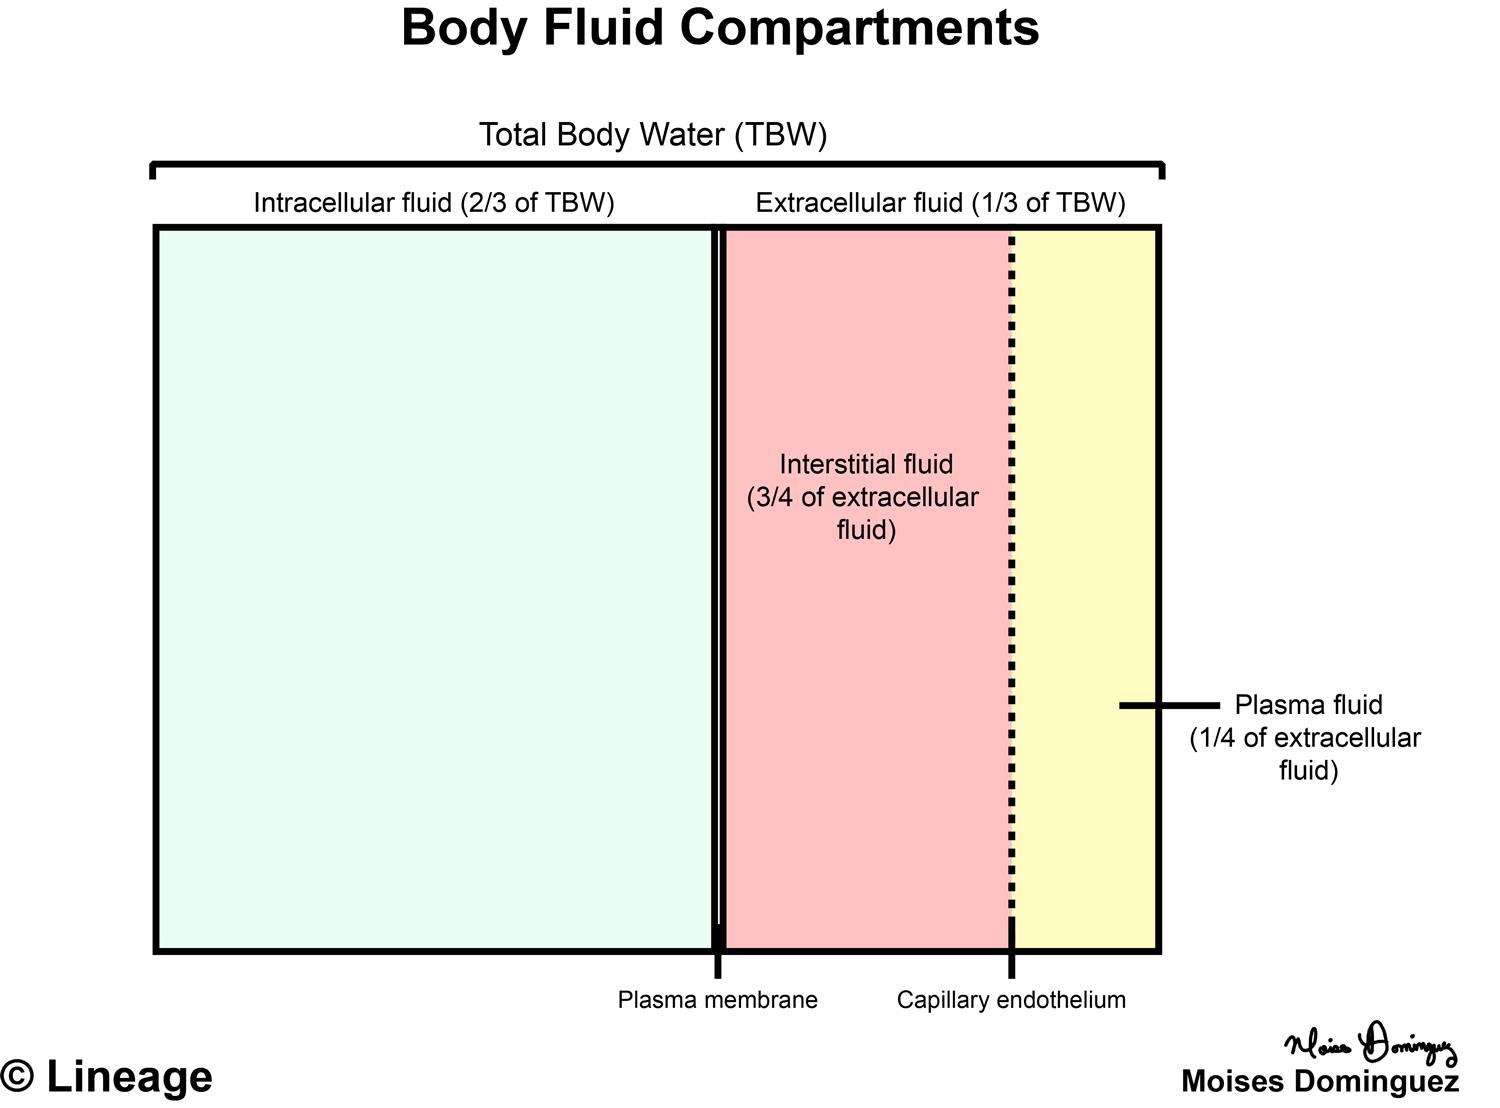 Body Fluid Compartments - Renal